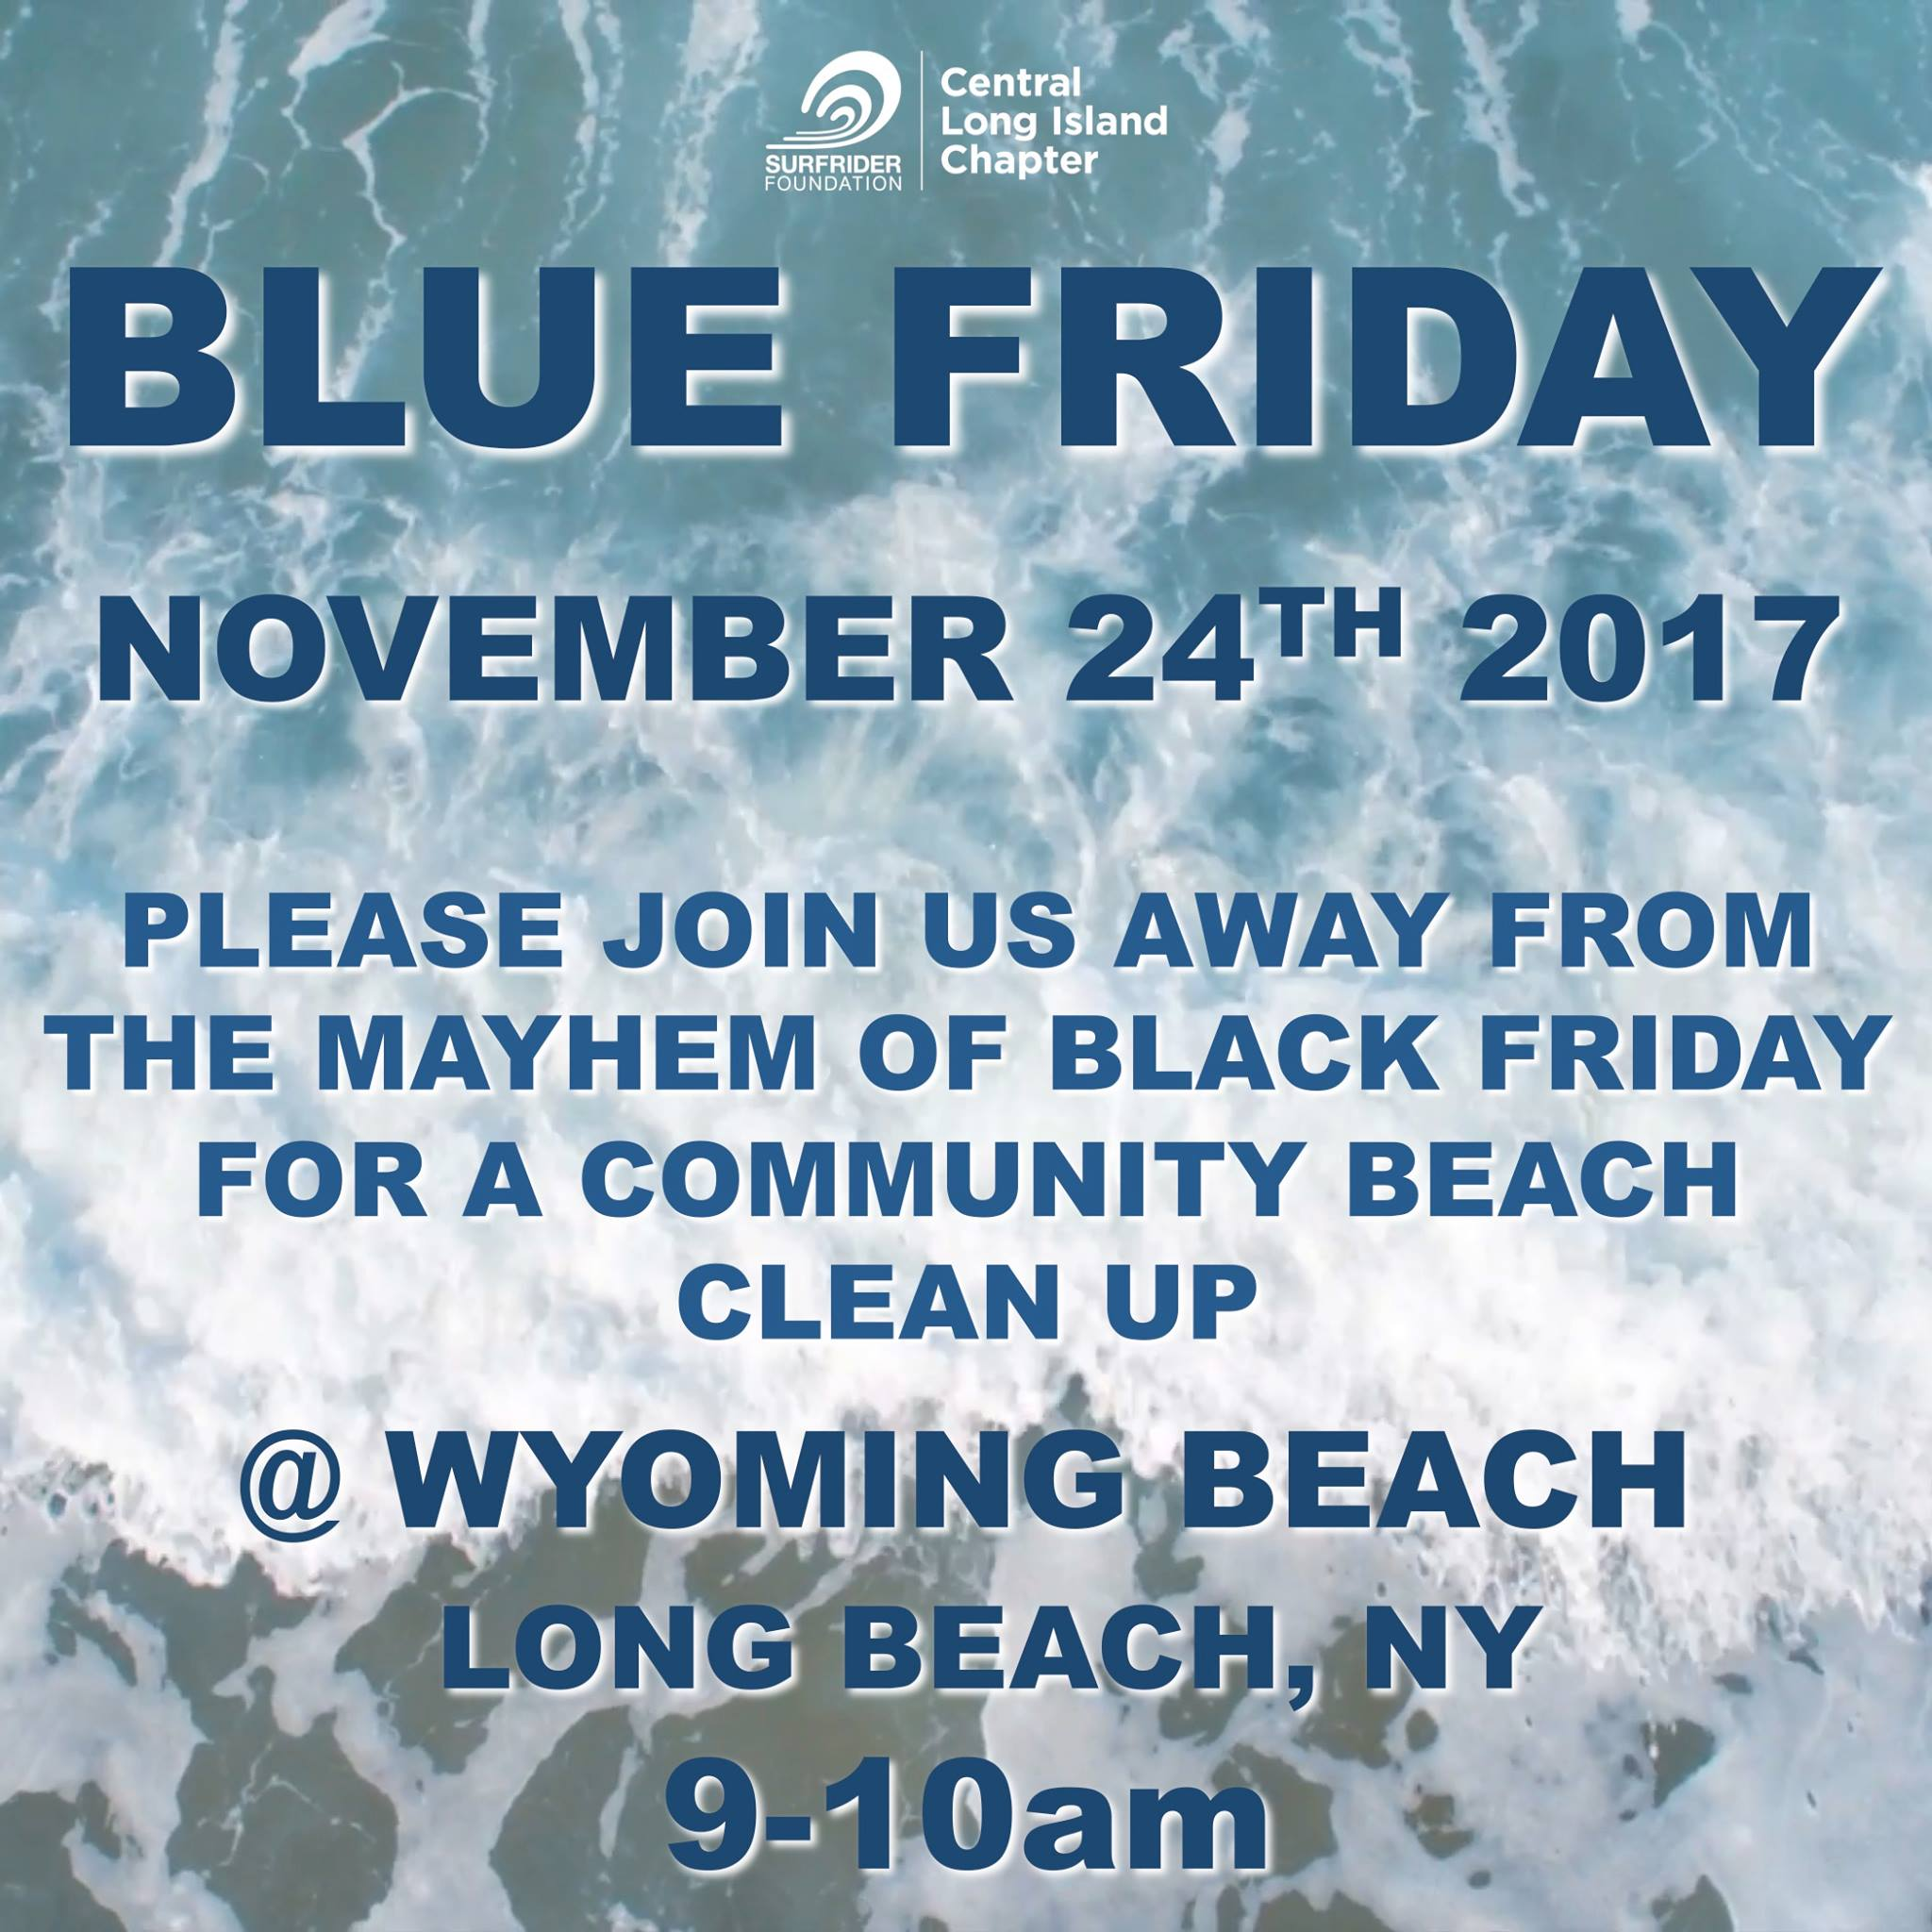 Skip black Friday and help cleanup our beaches!